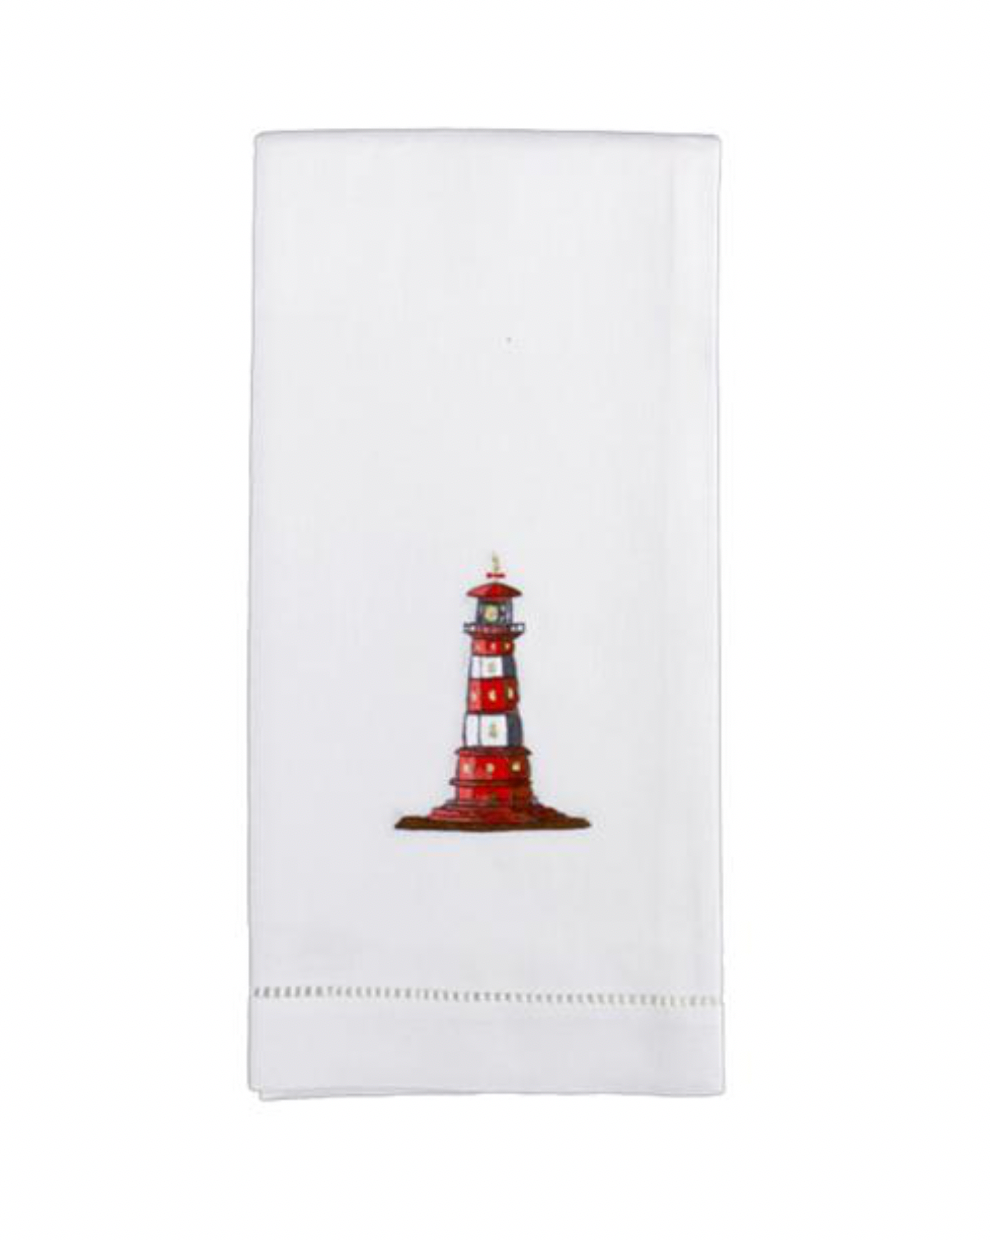 Hand Embroidered Lighthouse Hand Towels